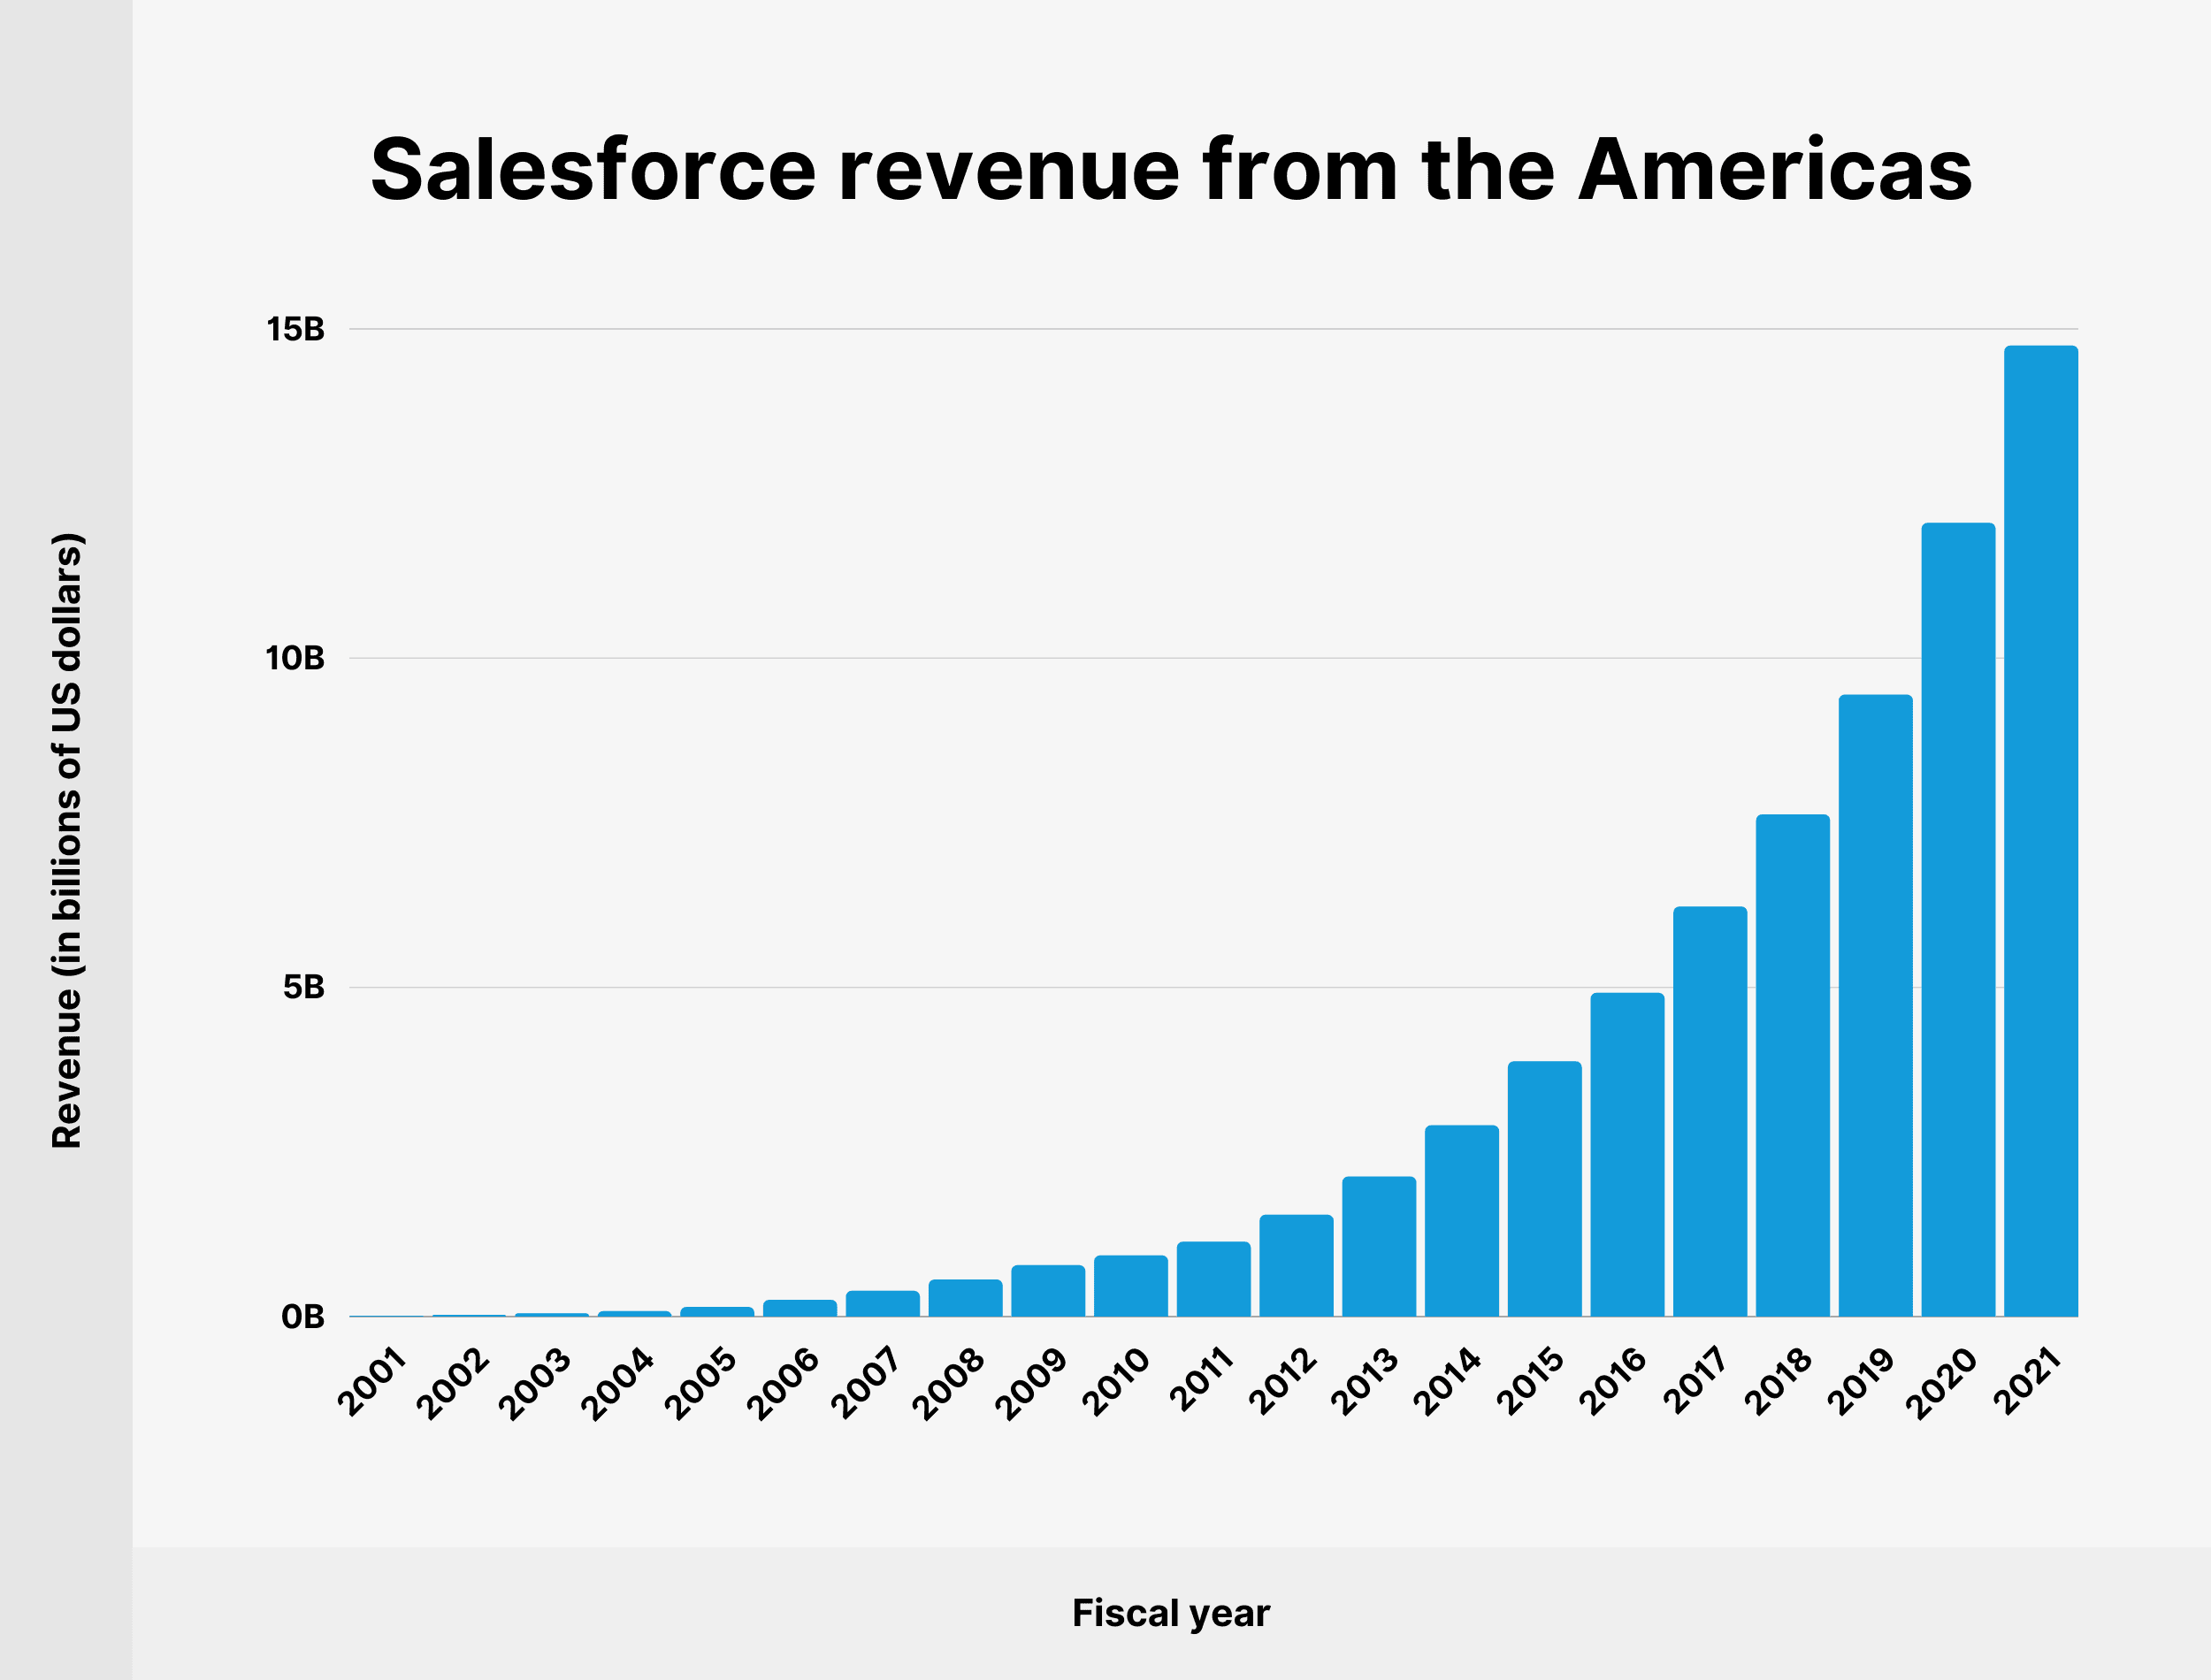 Salesforce revenue from the Americas